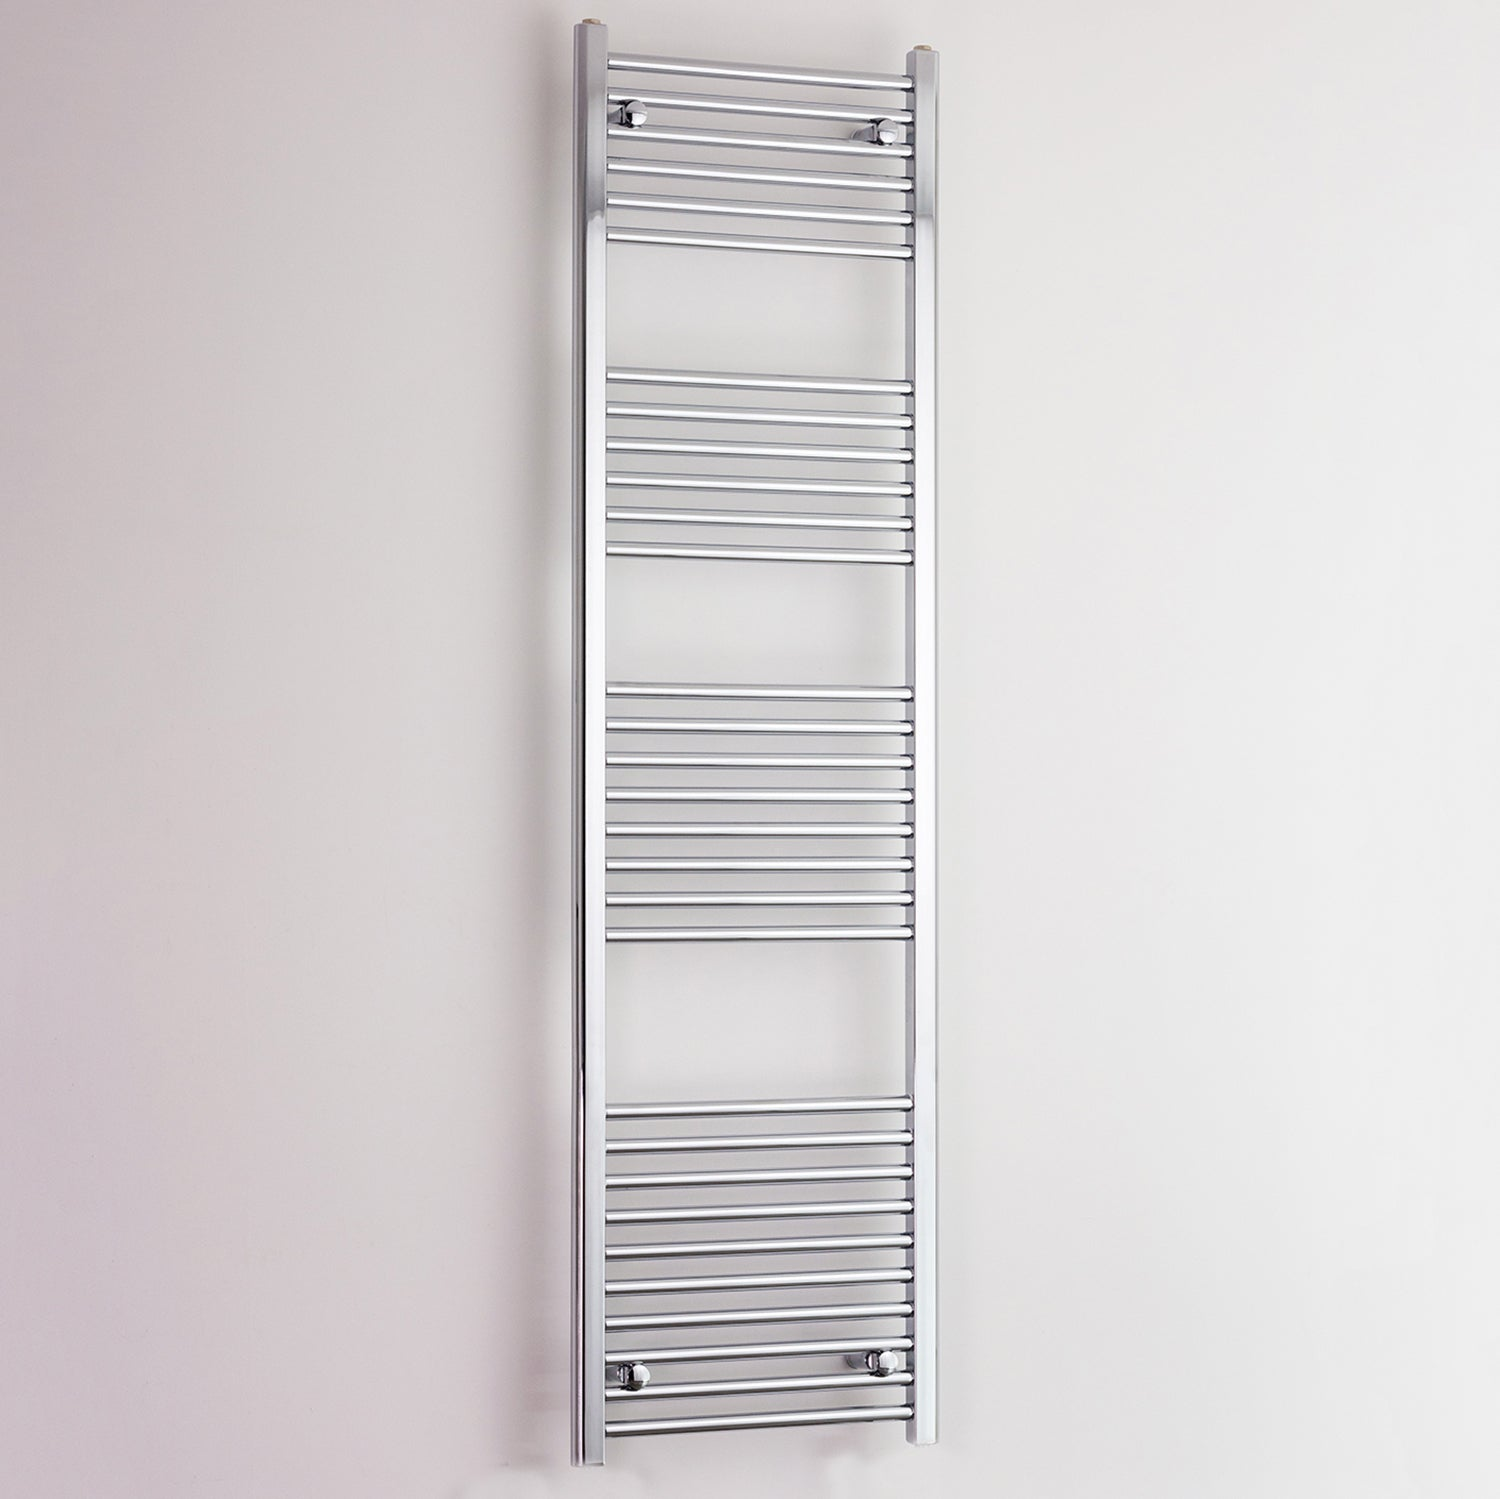 500mm Wide 1800mm High Flat Chrome Heated Towel Rail Radiator HTR,Towel Rail Only